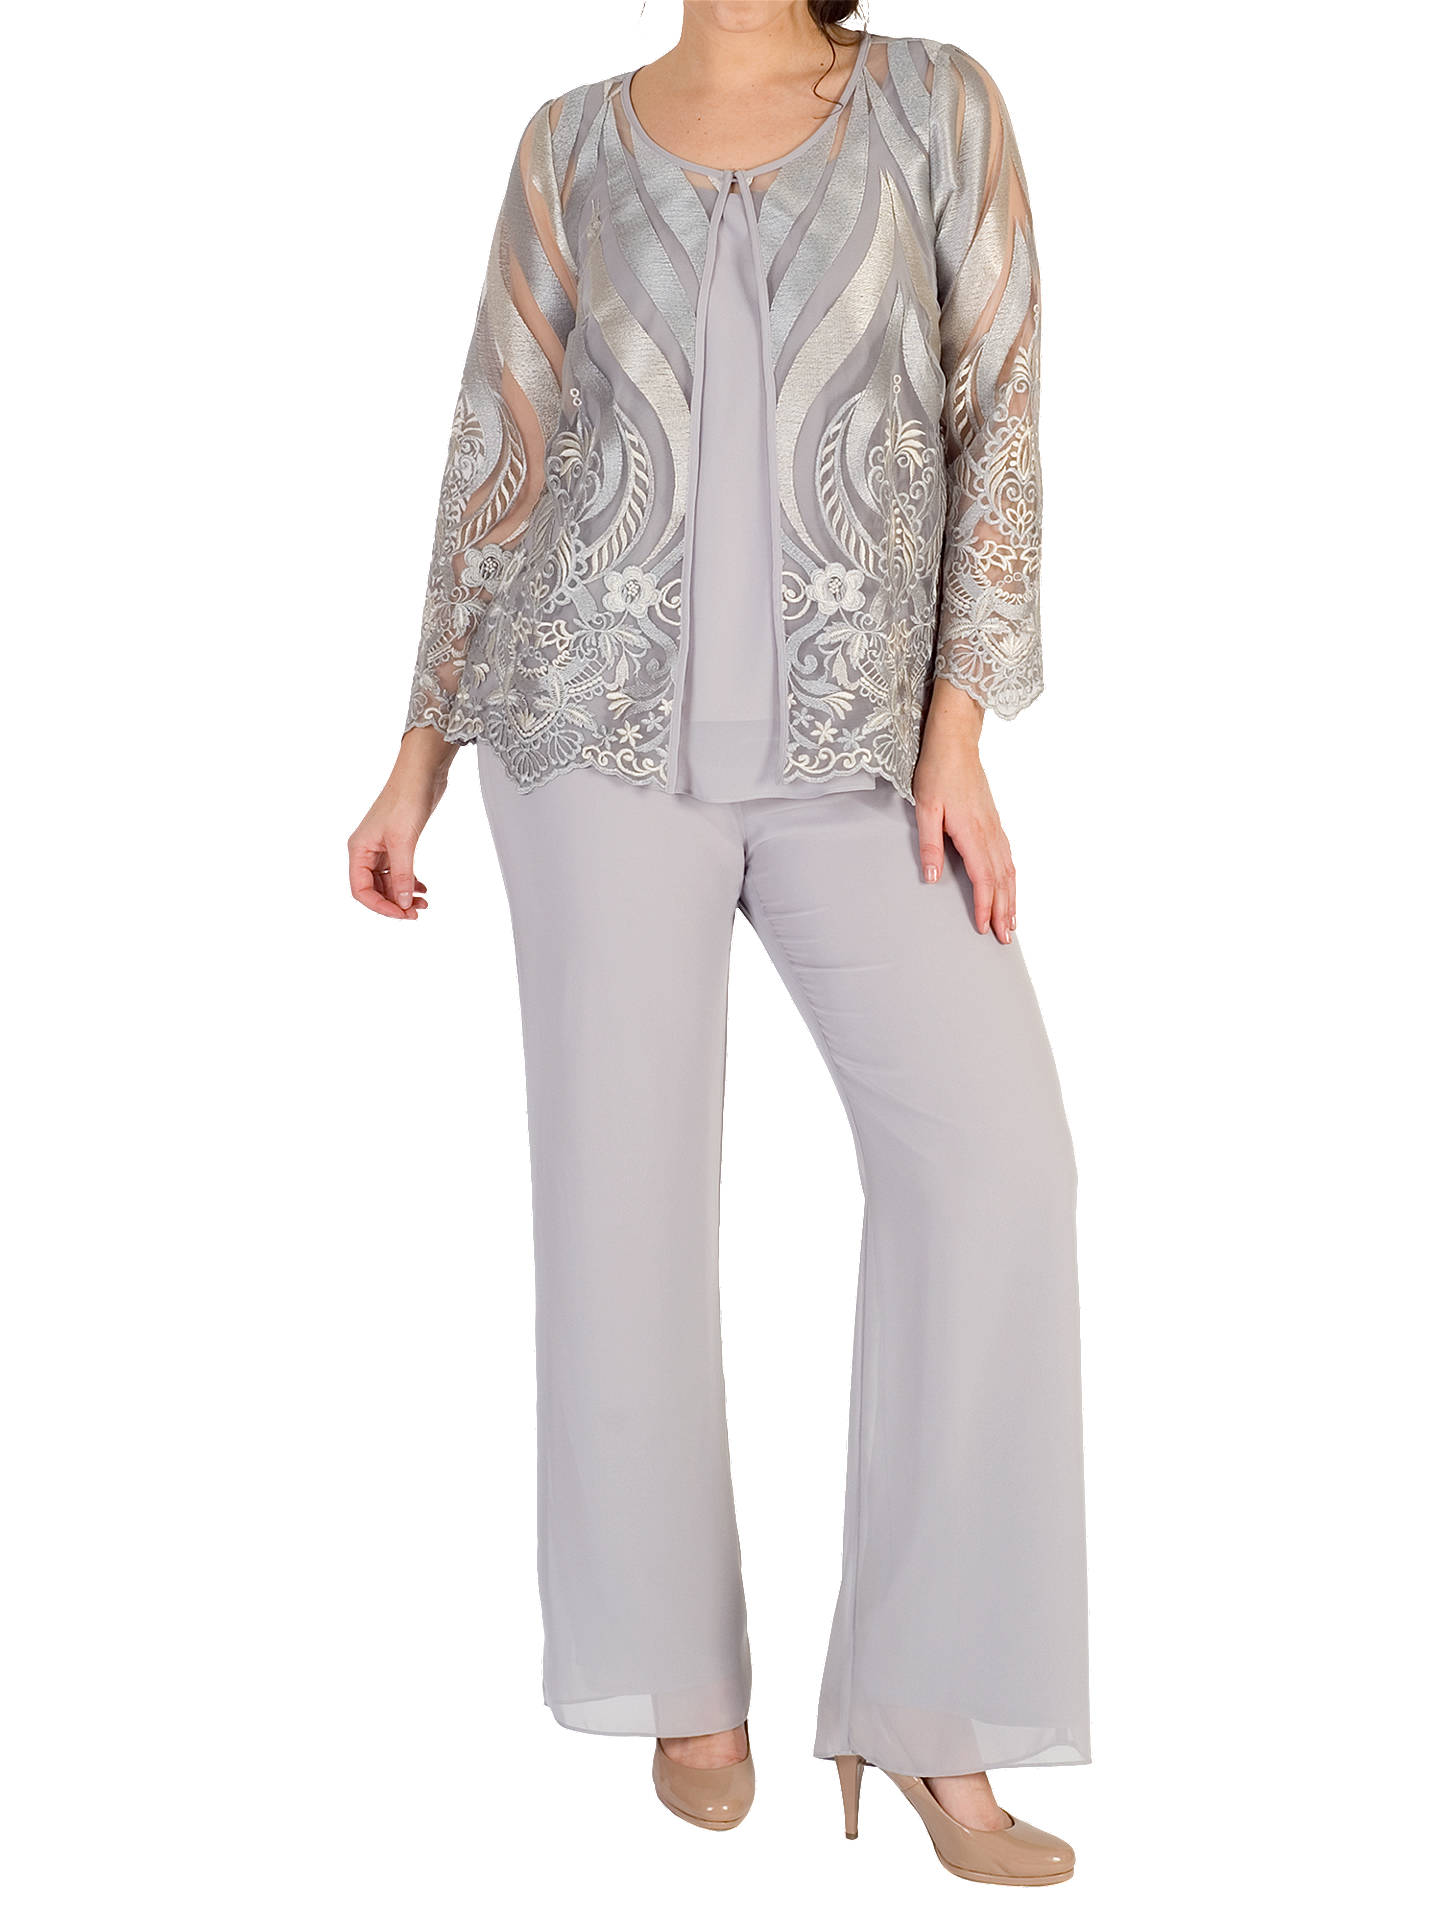 BuyChesca Embroidered Mesh Jacket, Soft Grey, 12 Online at johnlewis.com